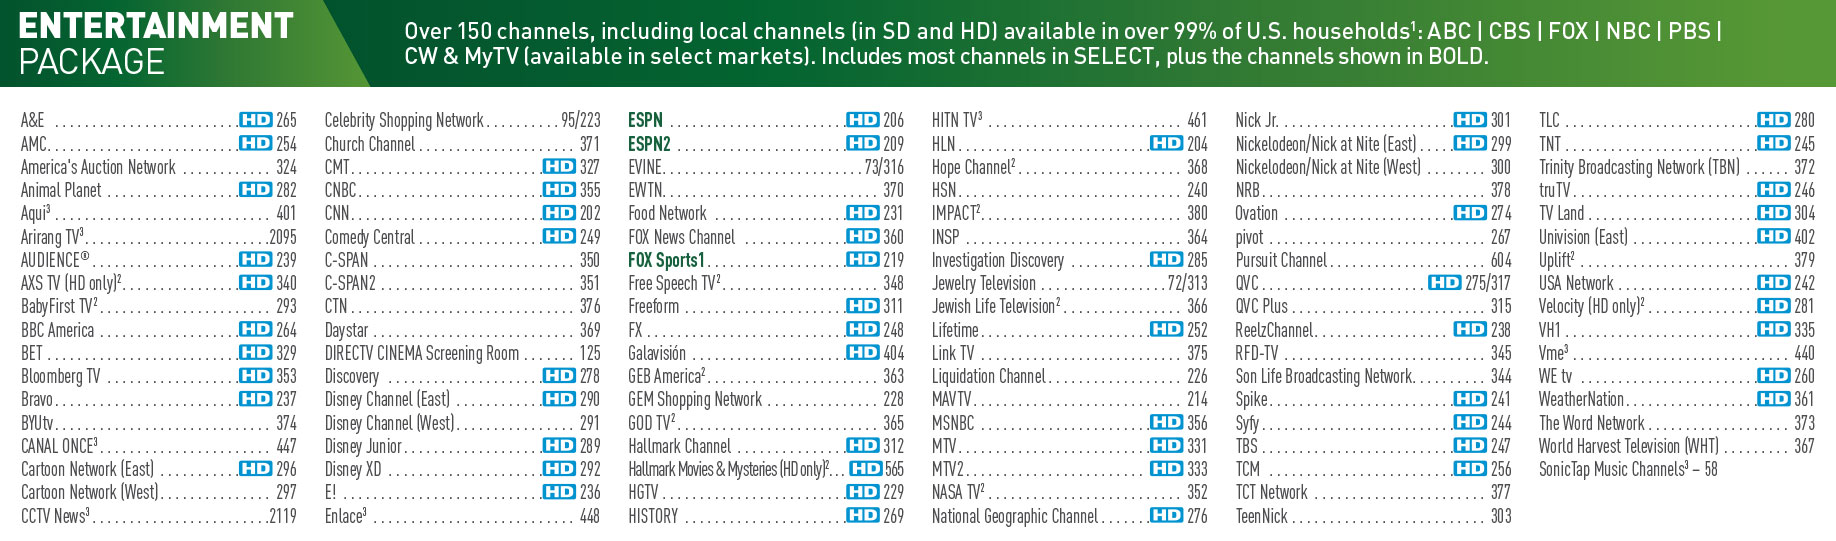 Direct Tv Travel Channel Package